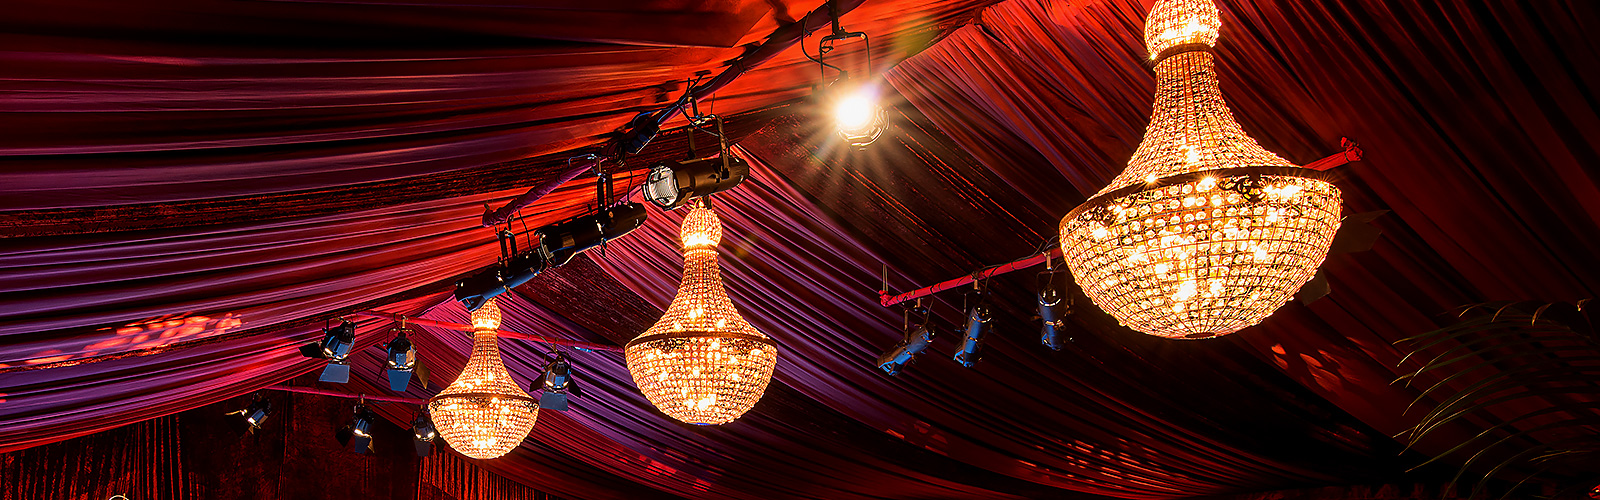 Crescent moon party decoration and prop hire for weddings and events chandelier hire specifications aloadofball Image collections